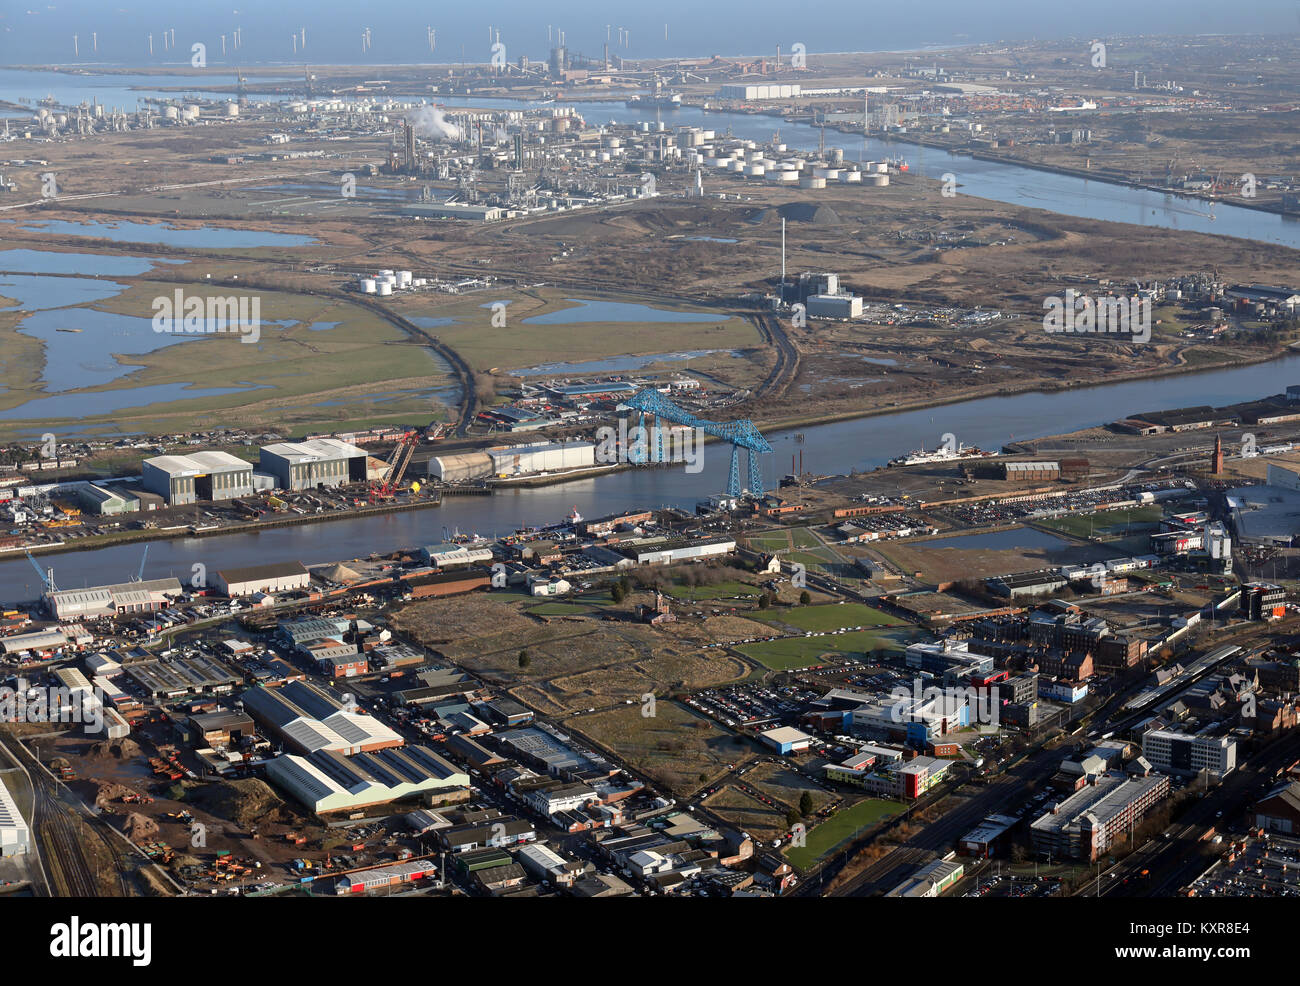 aerial view of the Transporter Bridge & Teesside industry on the River Tees, UK - Stock Image